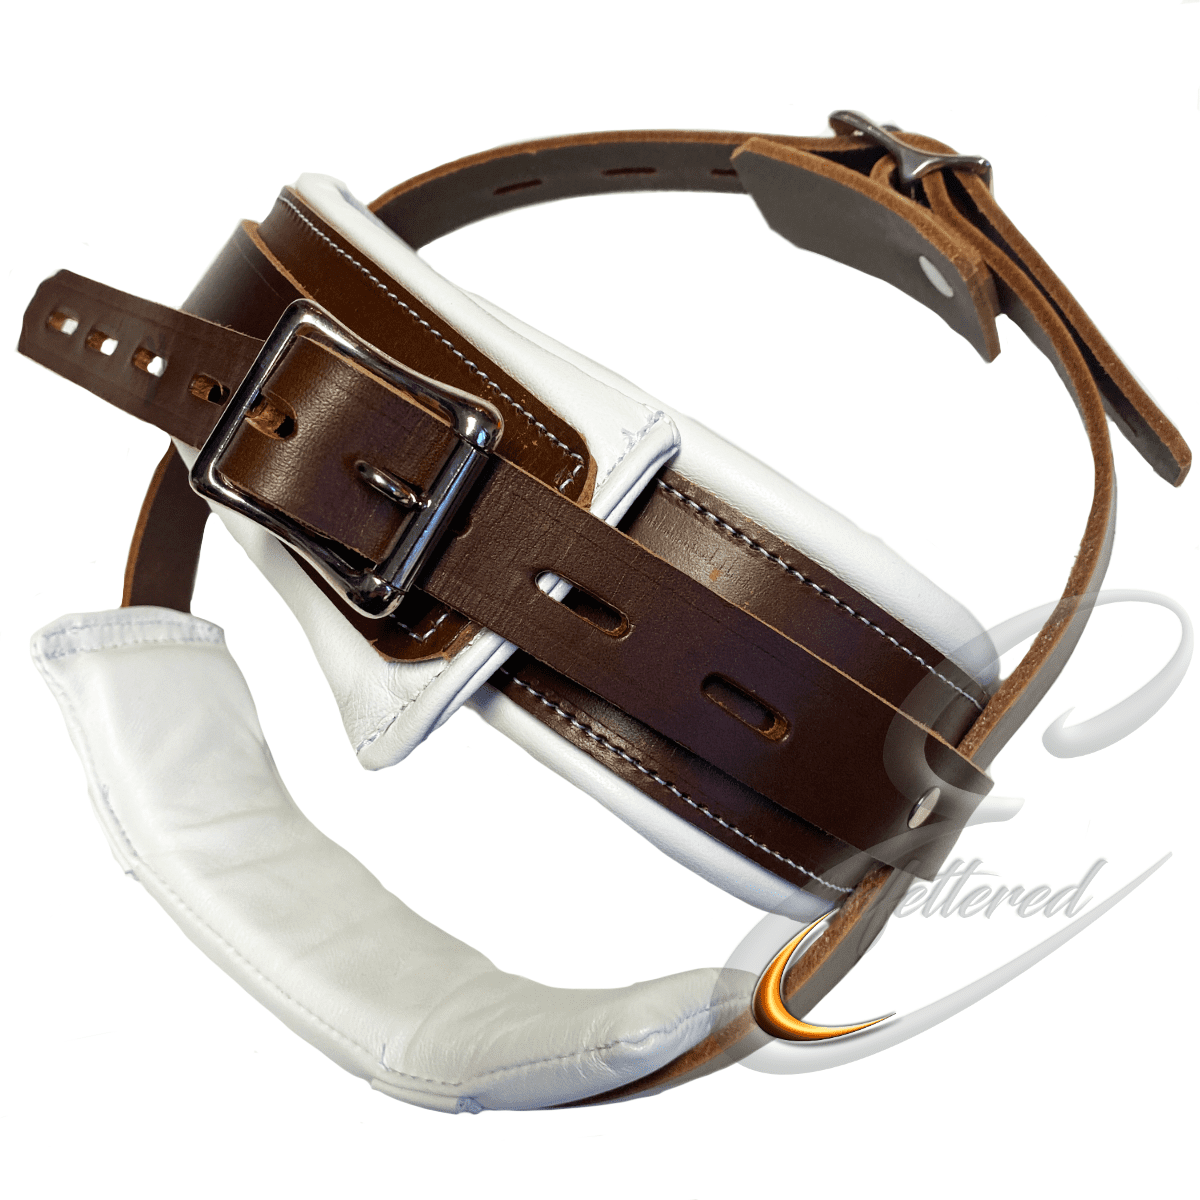 Enfettered Institutional Asylum Restraints – Head and Jaw cuff